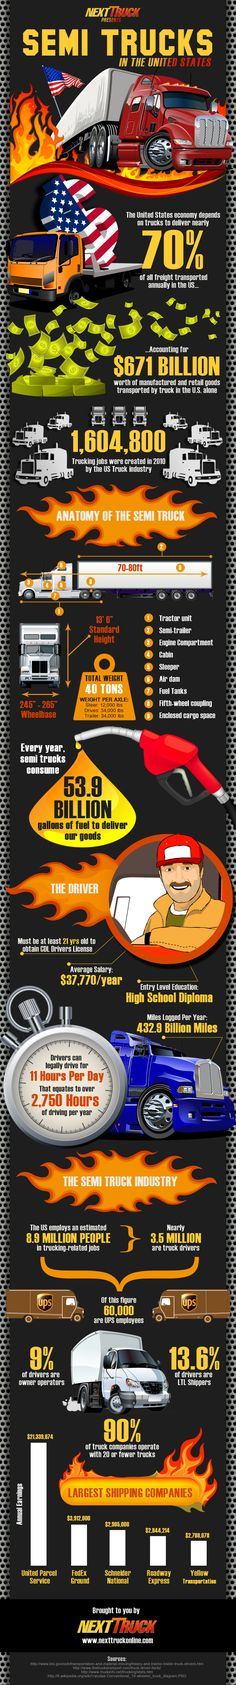 70% of all freight transported in the US economy depends on trucks. Awesome infographic from @NextTruck